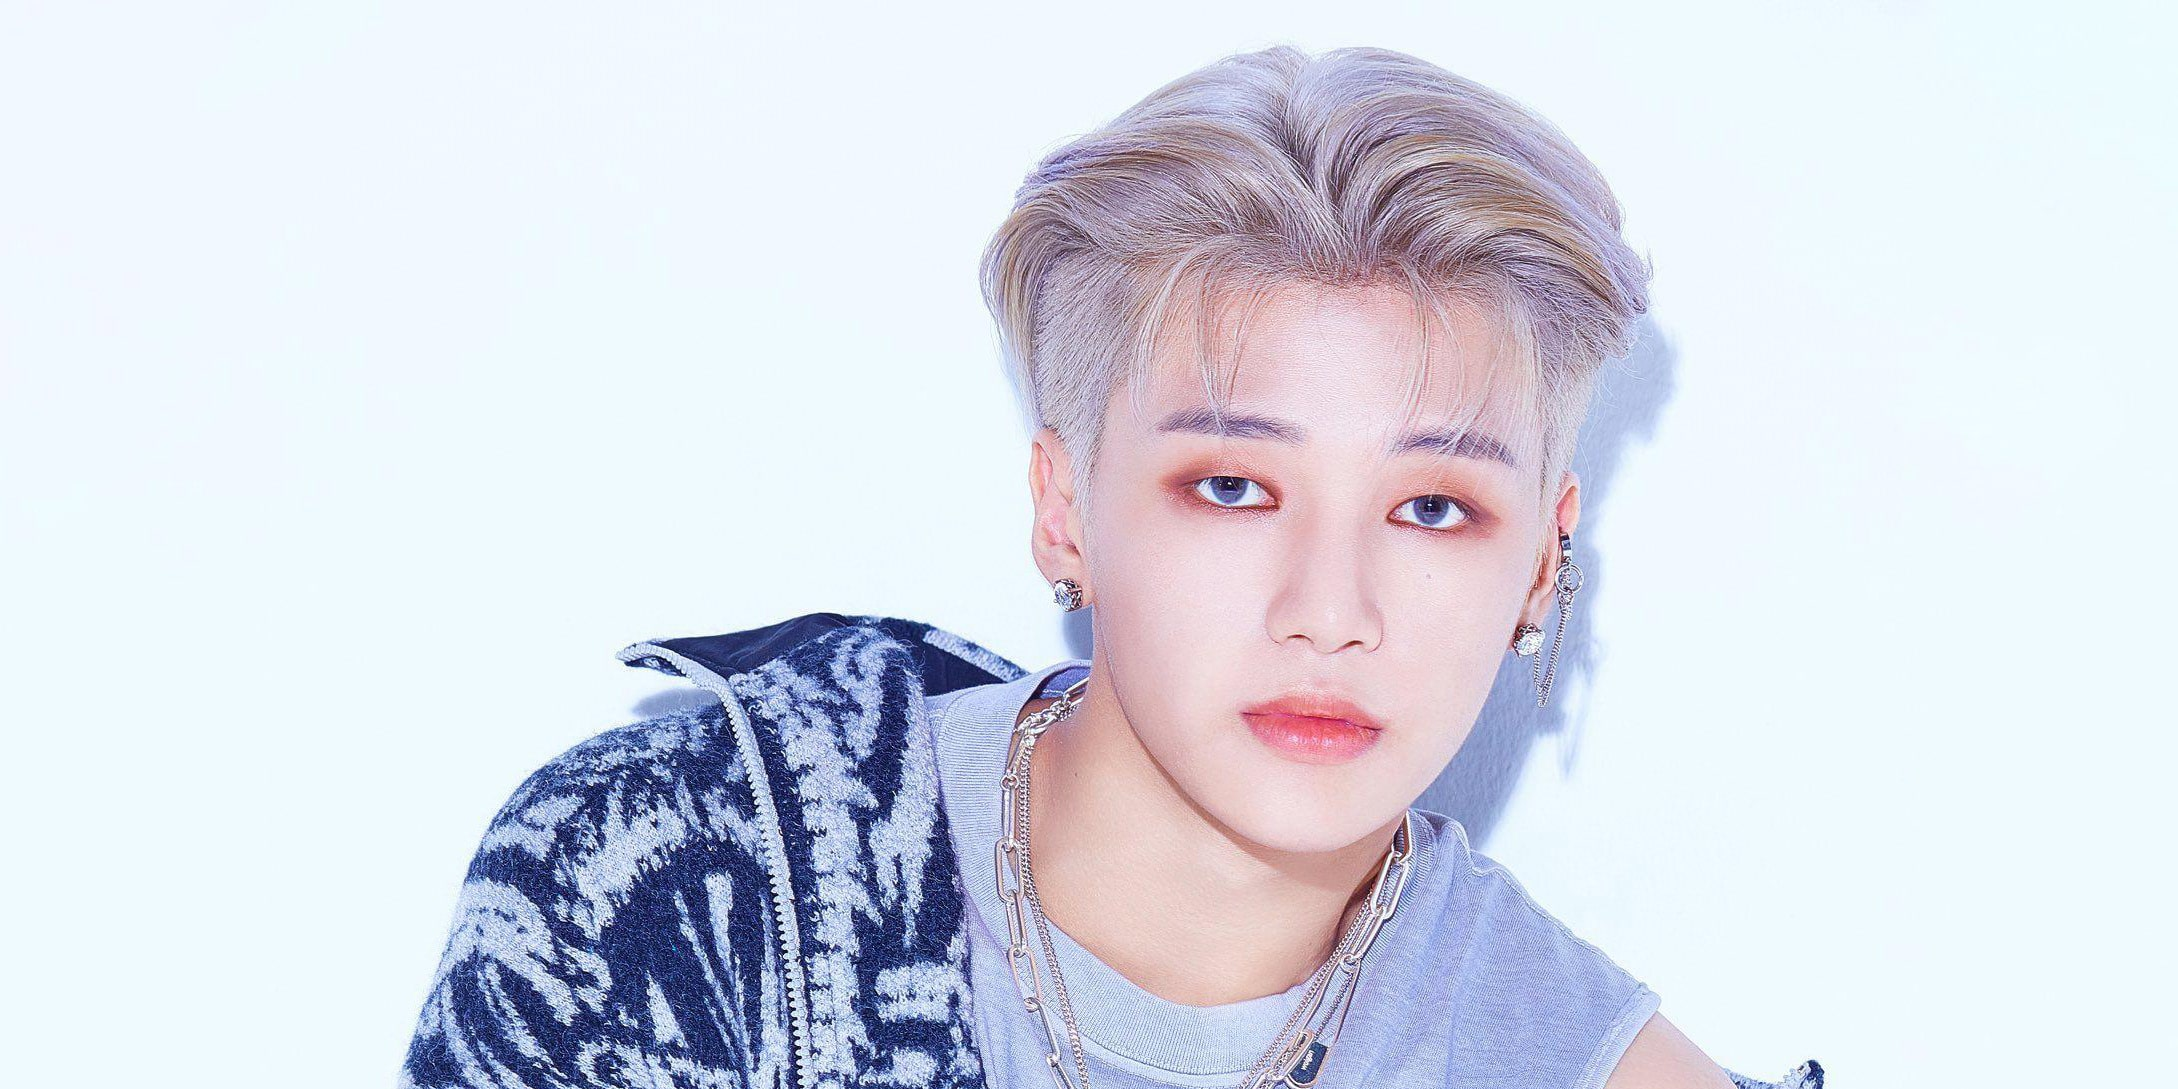 Wooyoung (ATEEZ) Age, Height. Who is Jung Wooyoung? Wiki - Kpop Wiki